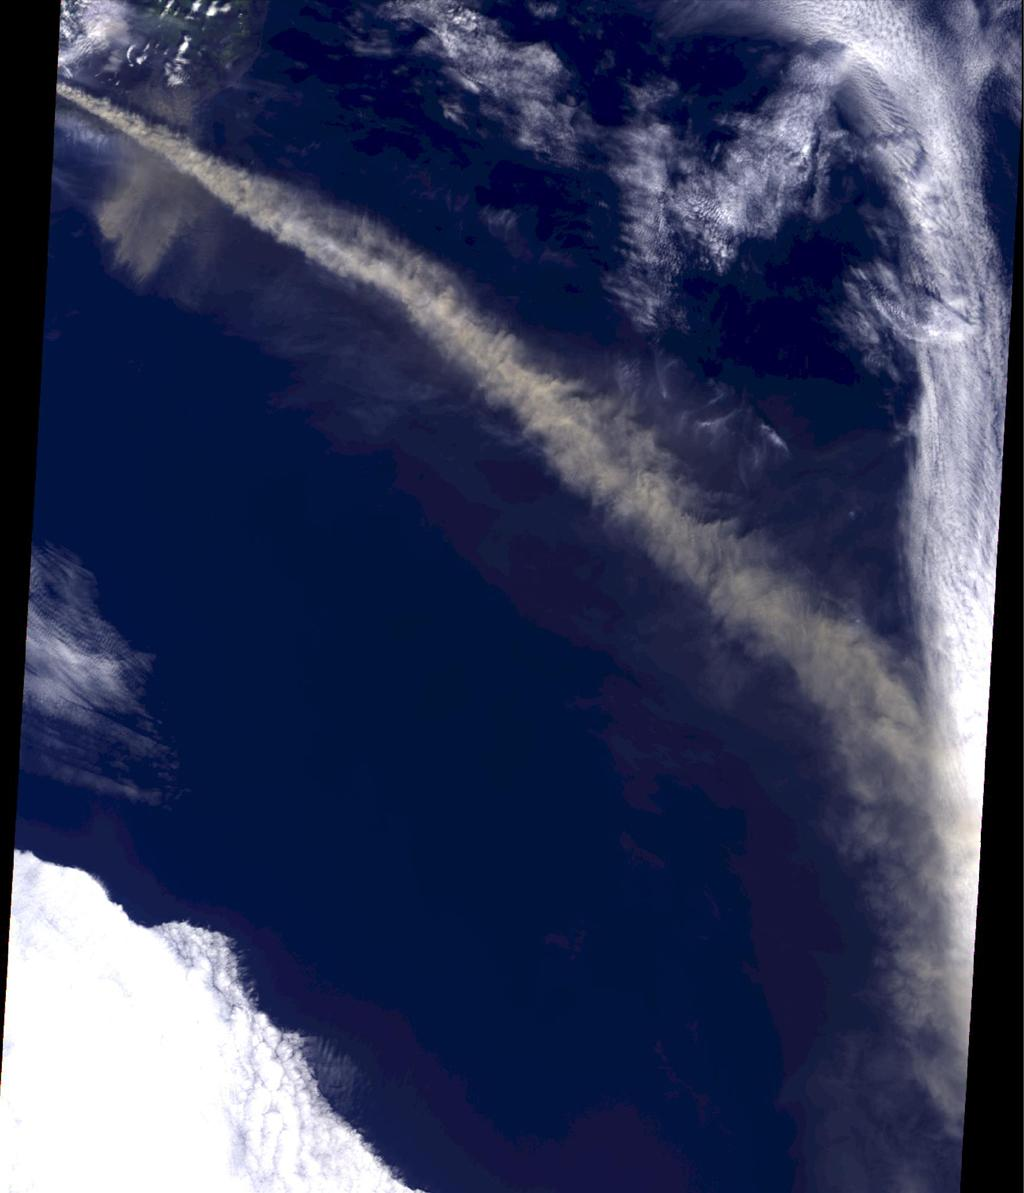 Iceland's Eyjafjallajökull volcano produced its second major ash plume beginning on May 7, 2010. NASA's Terra satellite passed just east of the volcano mid-morning and captured this image the same day.